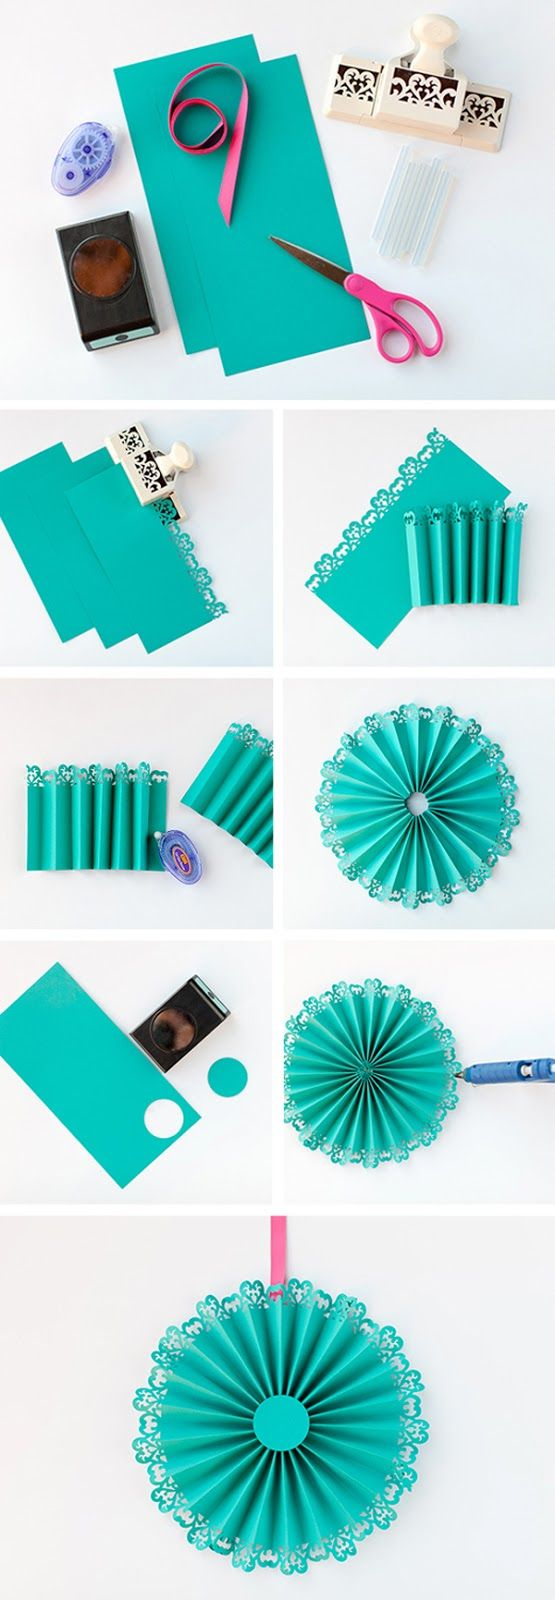 Diy de medallones de papel hacer guirnaldas pinterest for Paper decorations diy